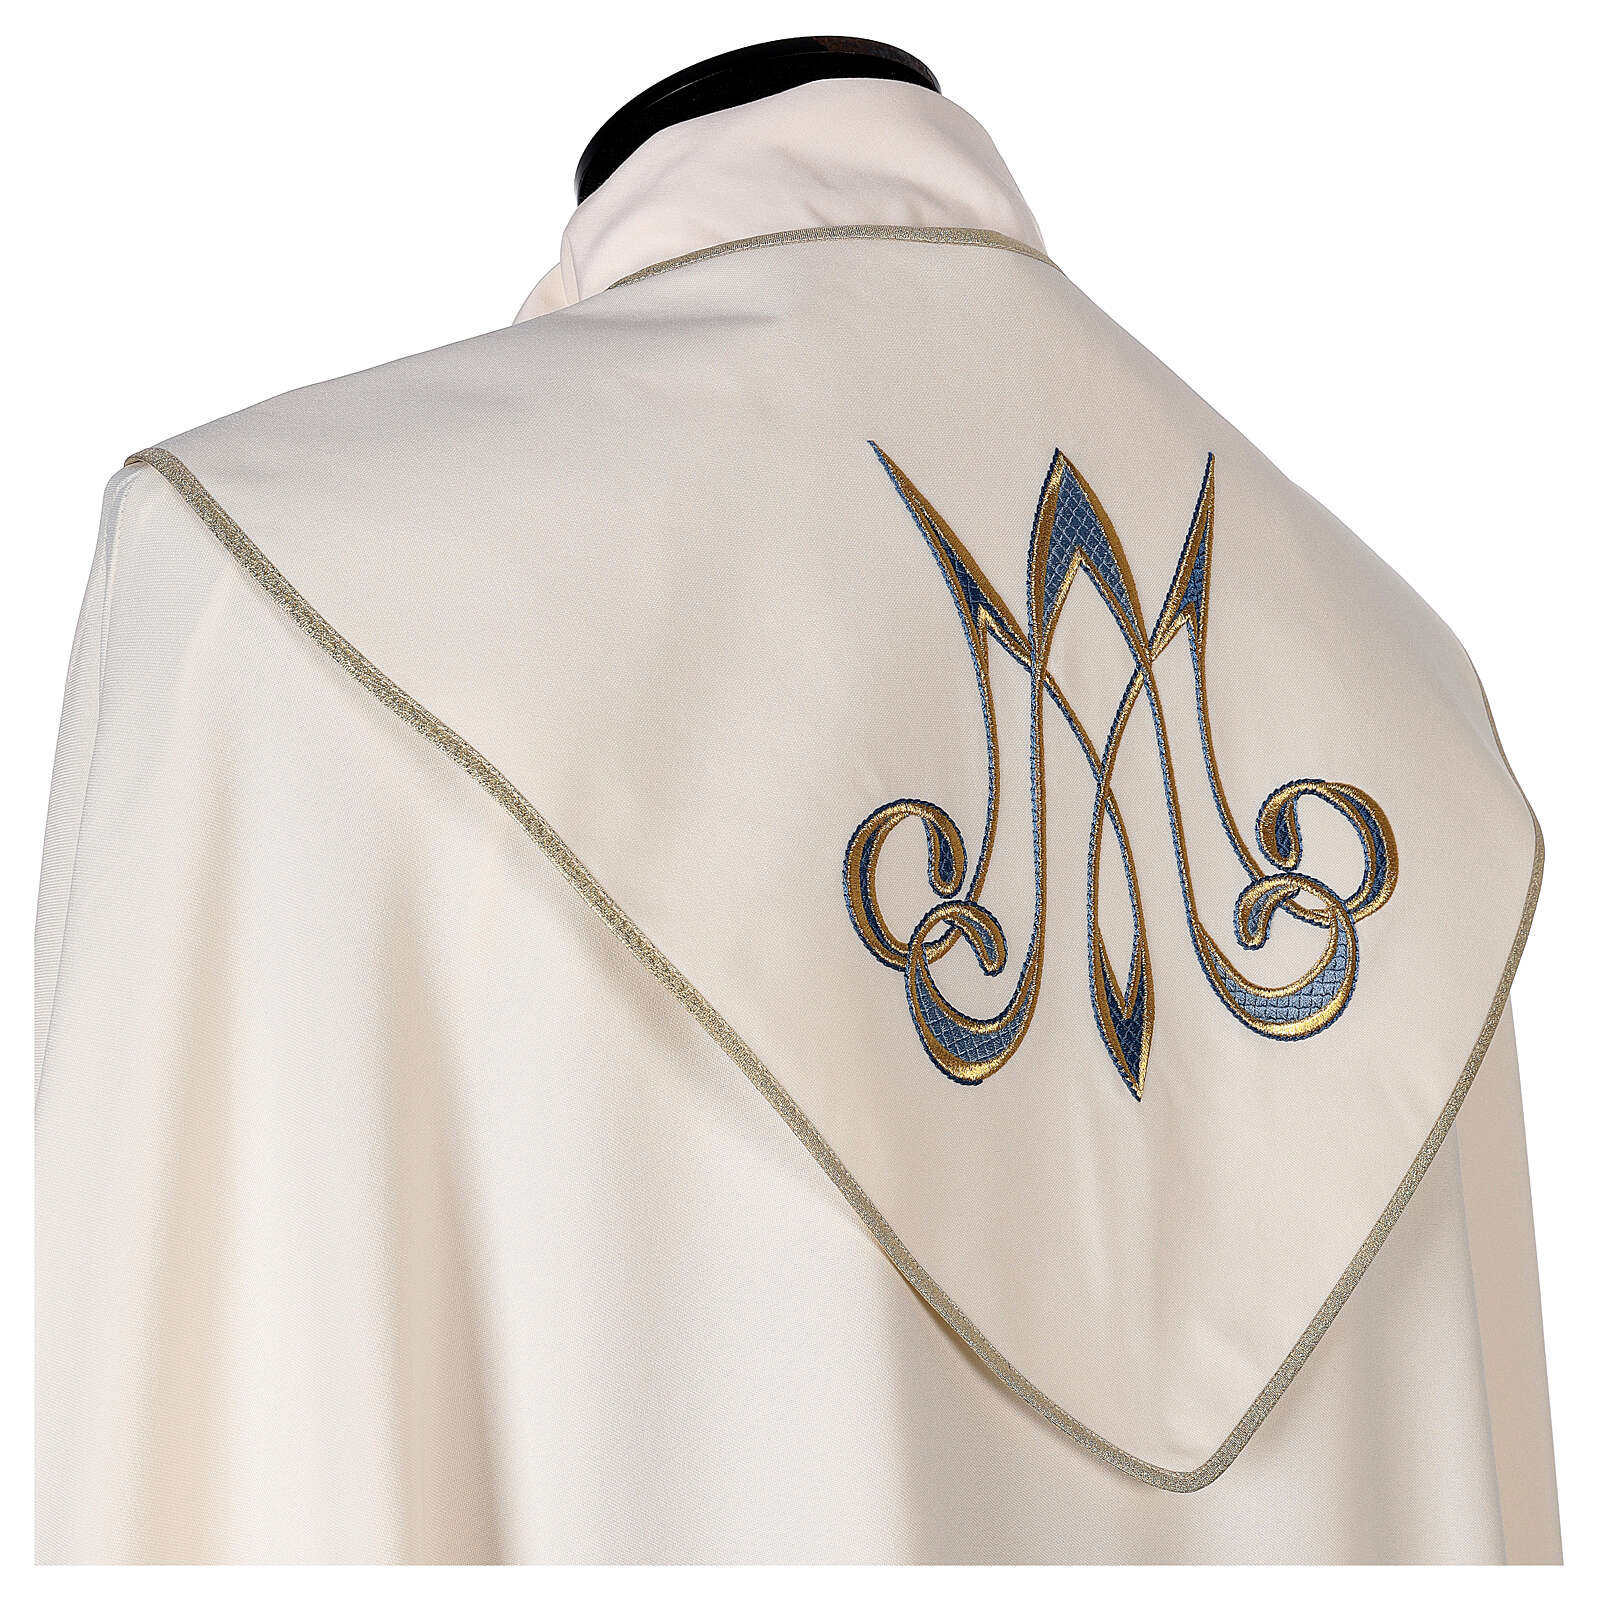 Marian cope 100% polyester machine embroidered lily monogram 4